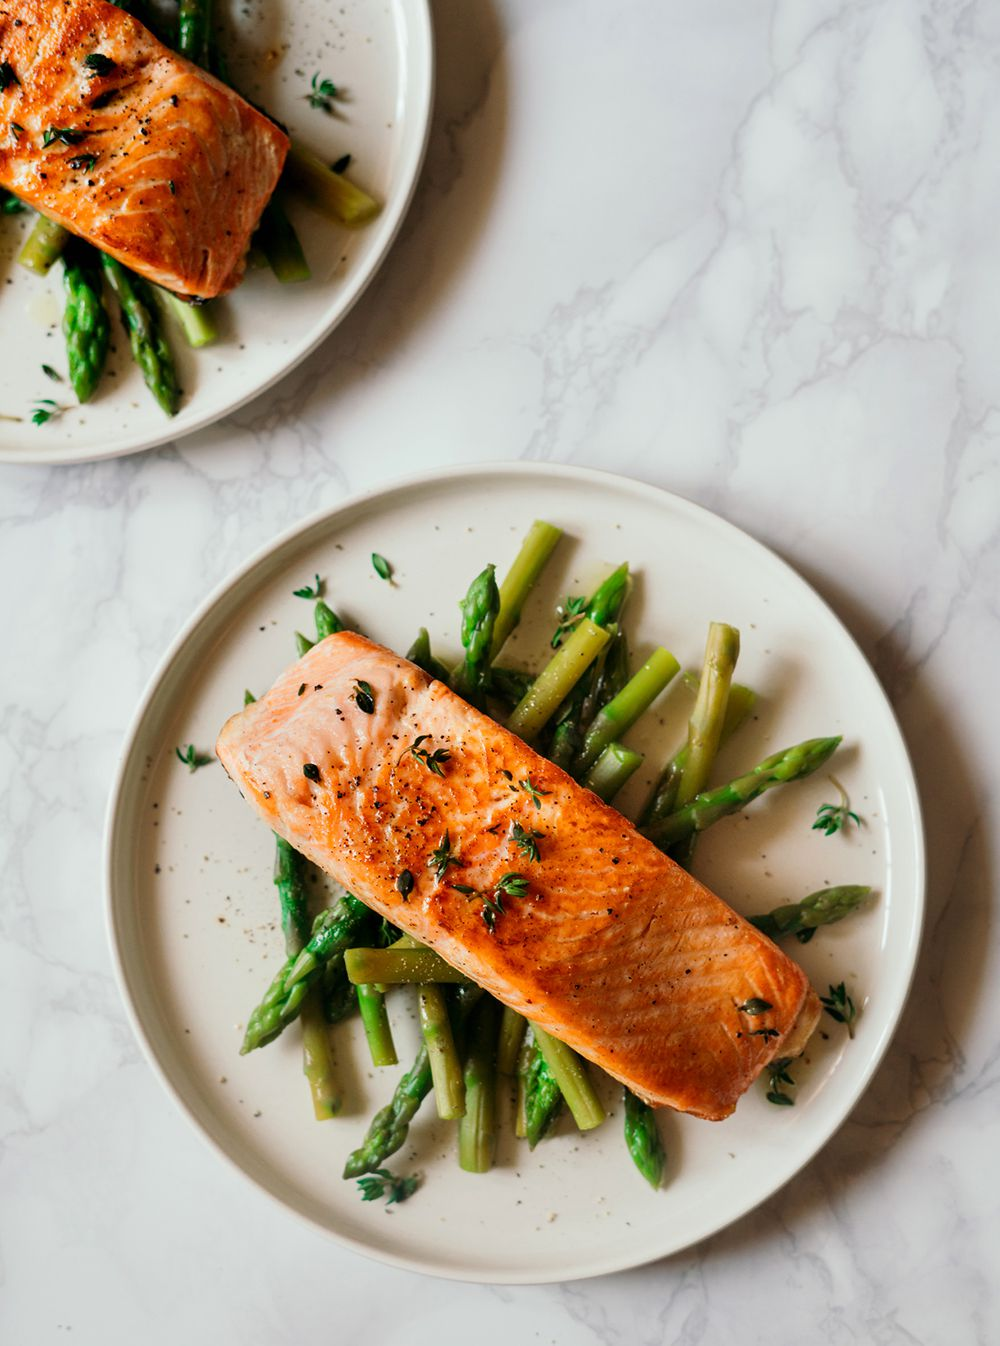 grilled salmon with lemon butter and veggies